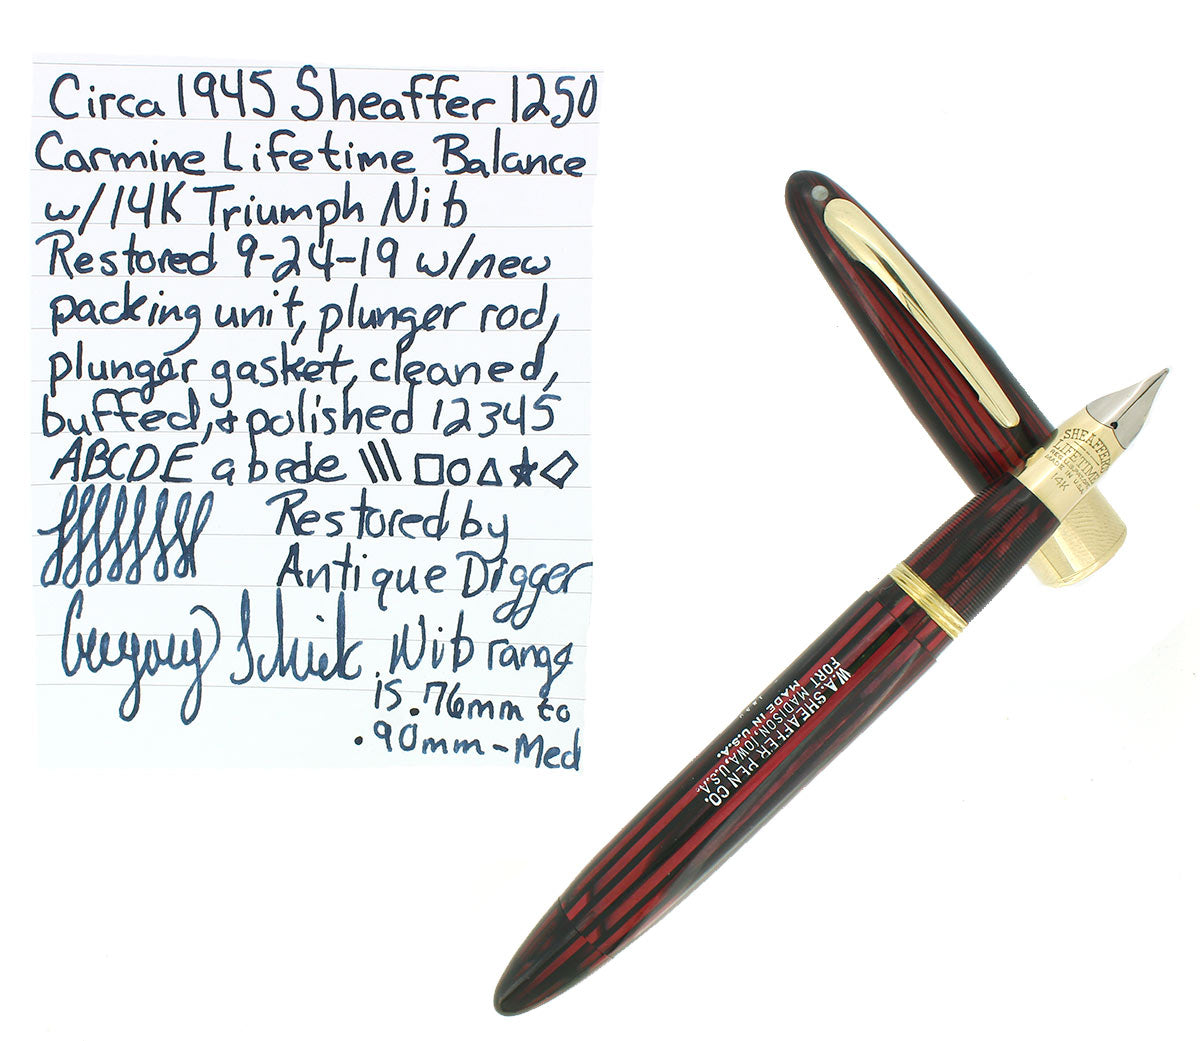 C1945 SHEAFFER CARMINE LIFETIME BALANCE 1250 TRIUMPH NIB FOUNTAIN PEN RESTORED OFFERED BY ANTIQUE DIGGER